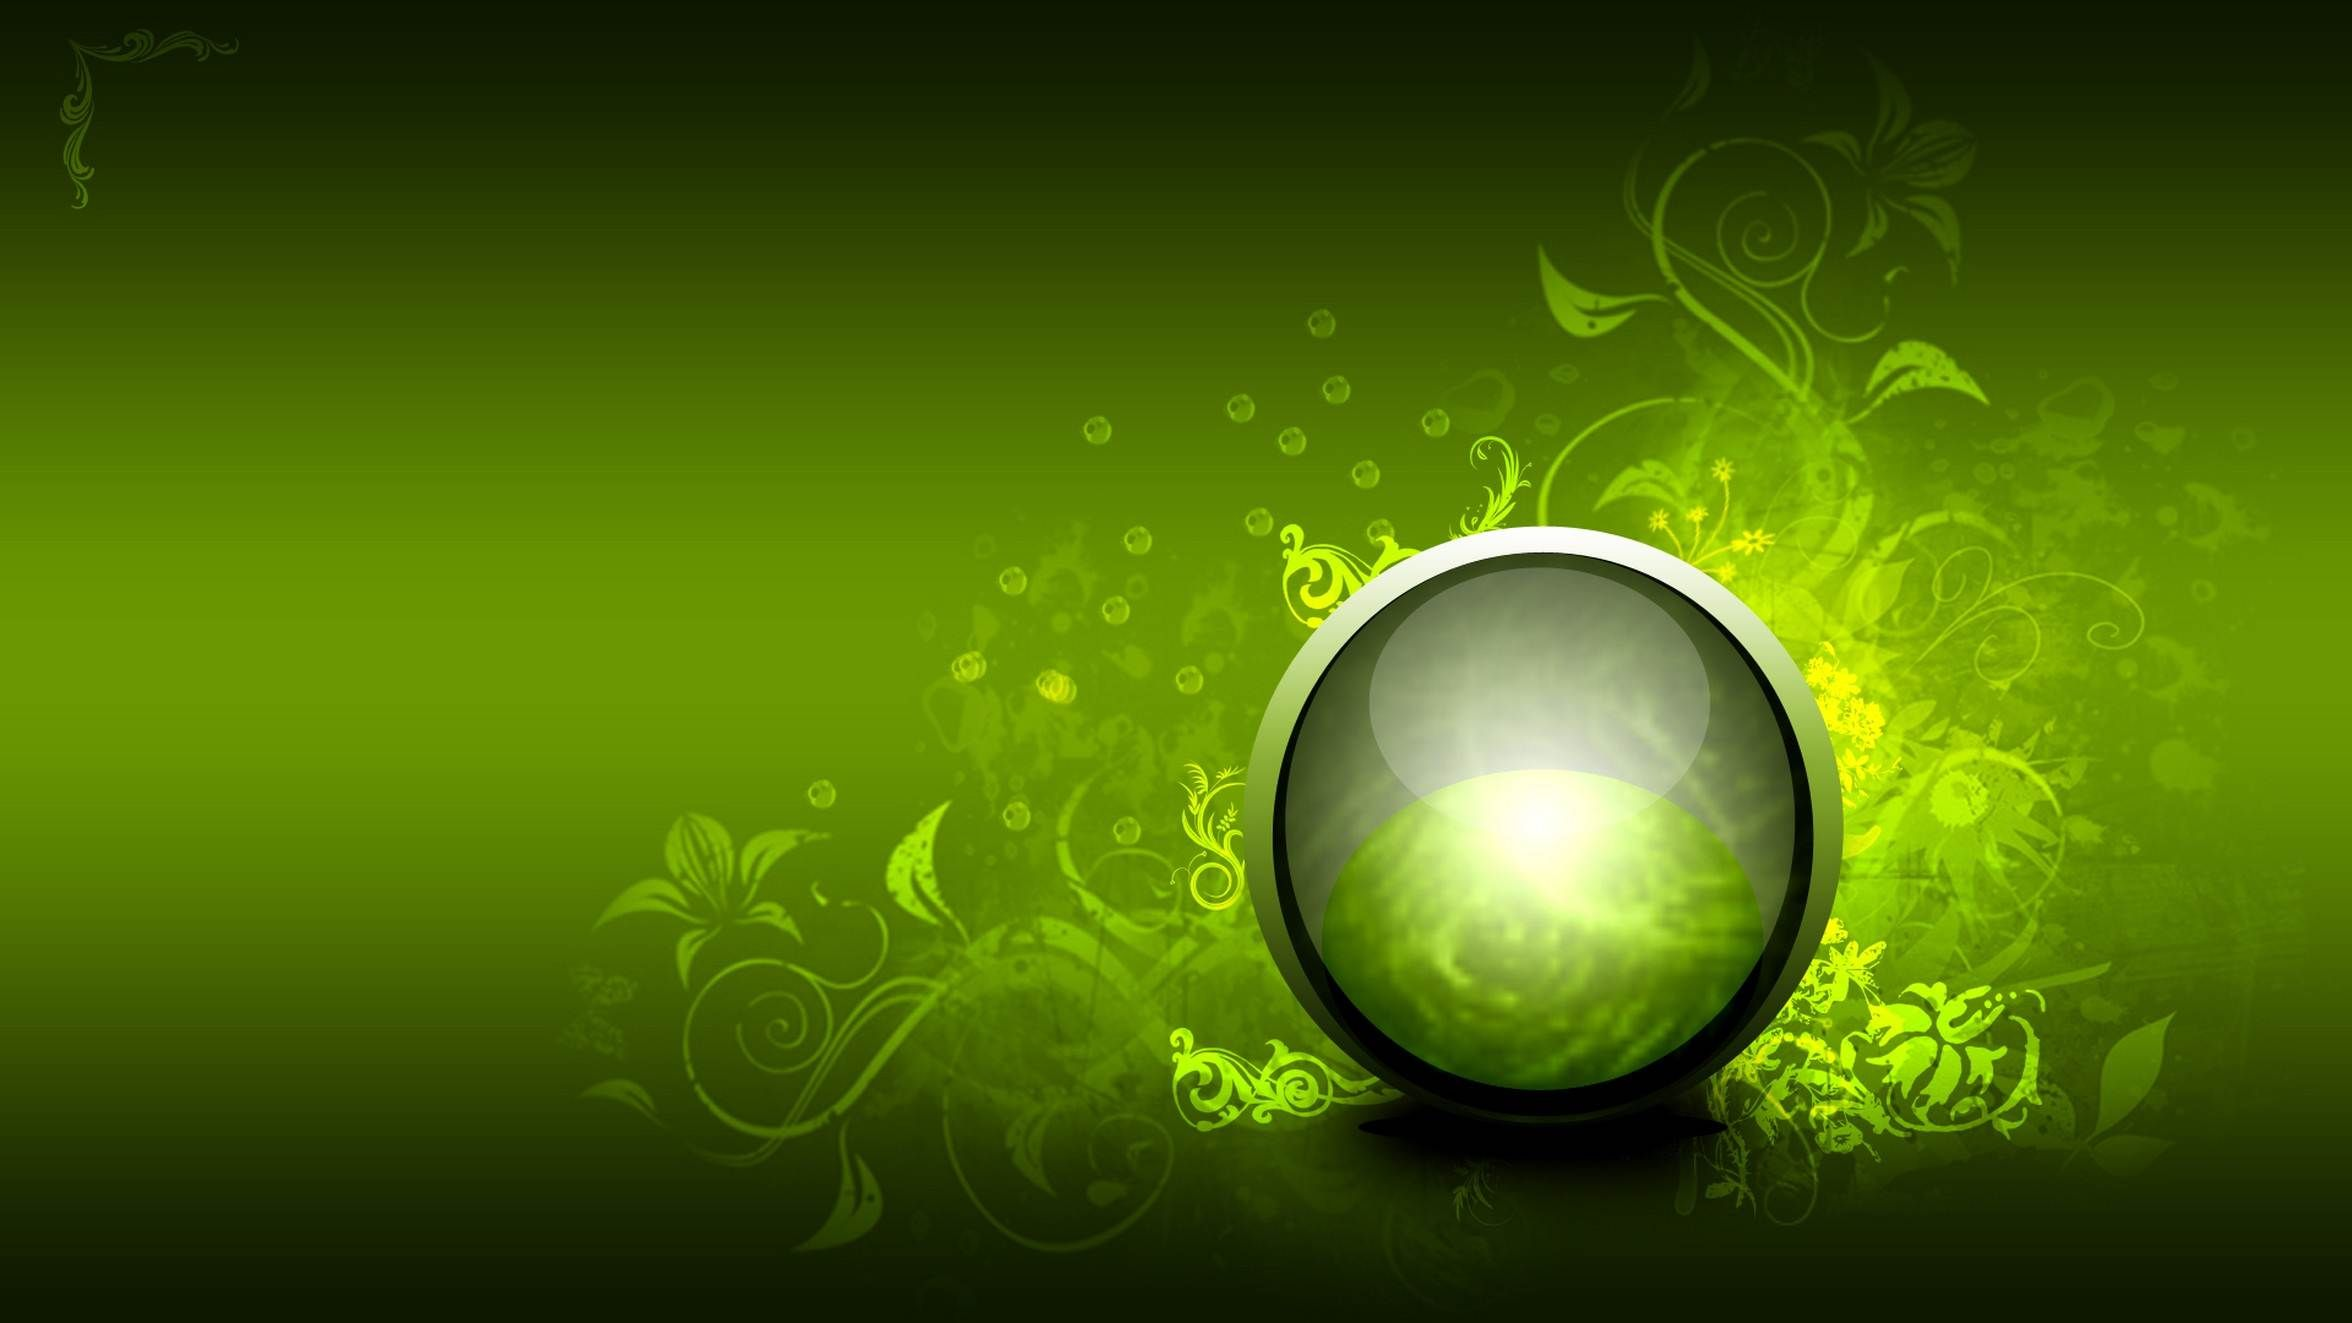 Free Awesome Theme Picture 17 Hd Wallpapers Gr8 Desktop